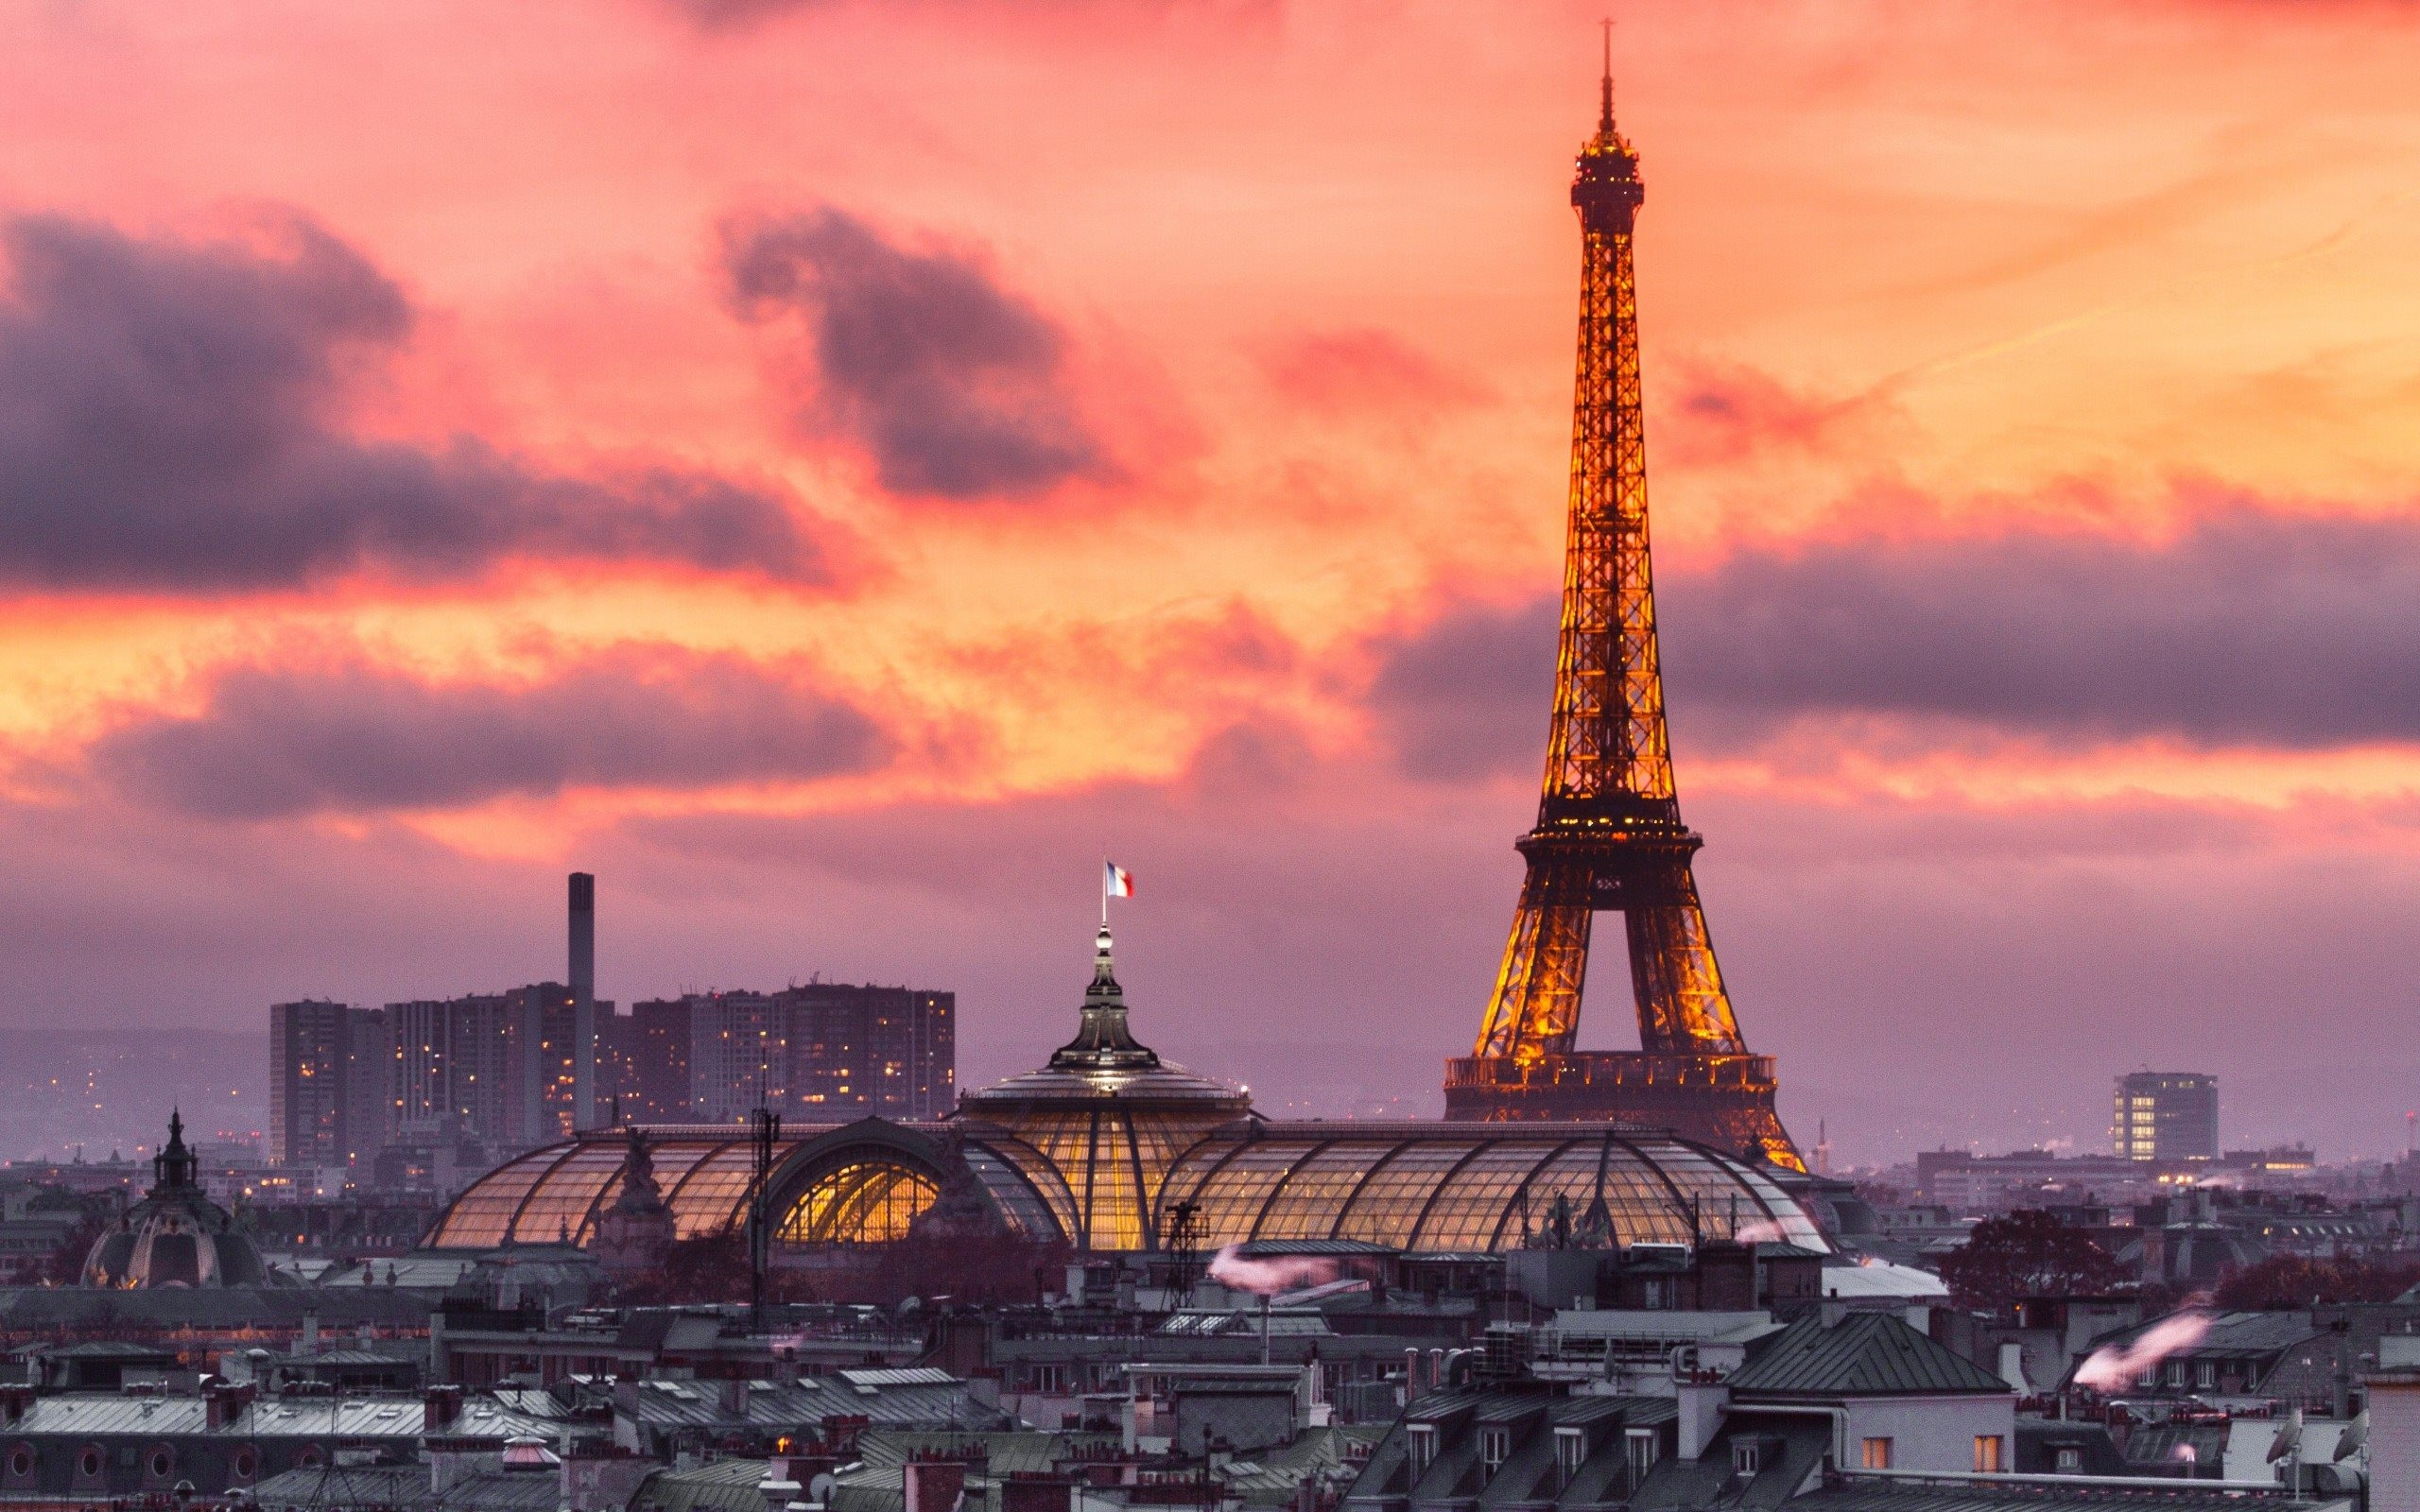 Res: 2560x1600, Download wallpapers evening, Paris, France, Eiffel Tower, sunset, France  flag for desktop with resolution . High Quality HD pictures  wallpapers